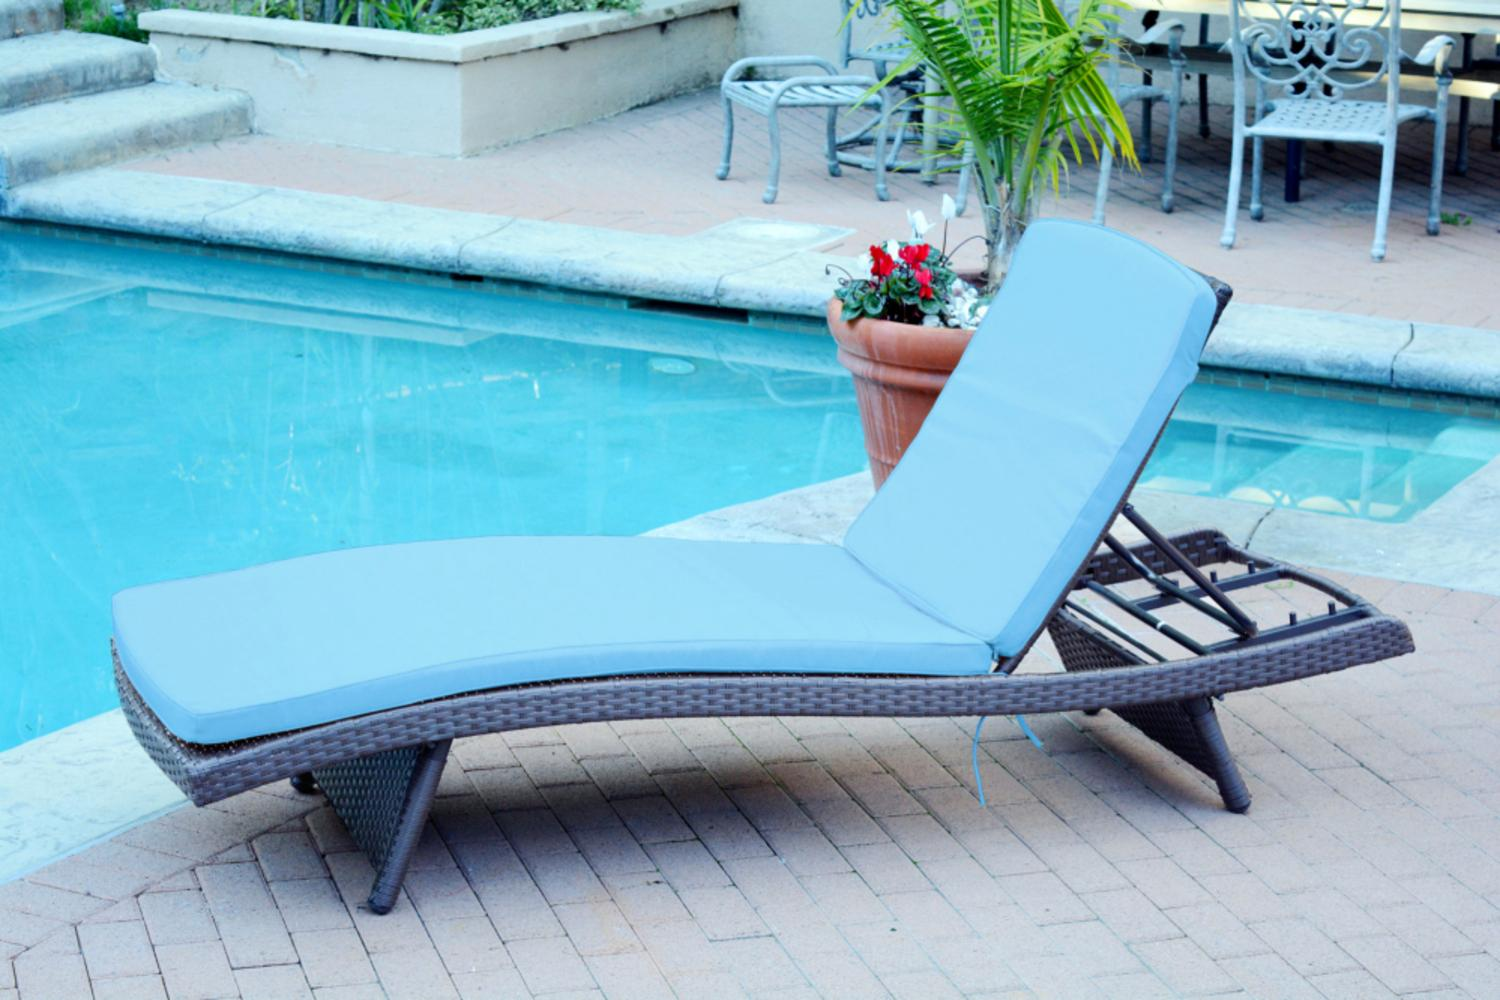 80  Adjustable Espresso Resin Wicker Outdoor Patio Chaise Lounge Chair - Turquoise Cushion  sc 1 st  Walmart : turquoise chaise lounge - Sectionals, Sofas & Couches